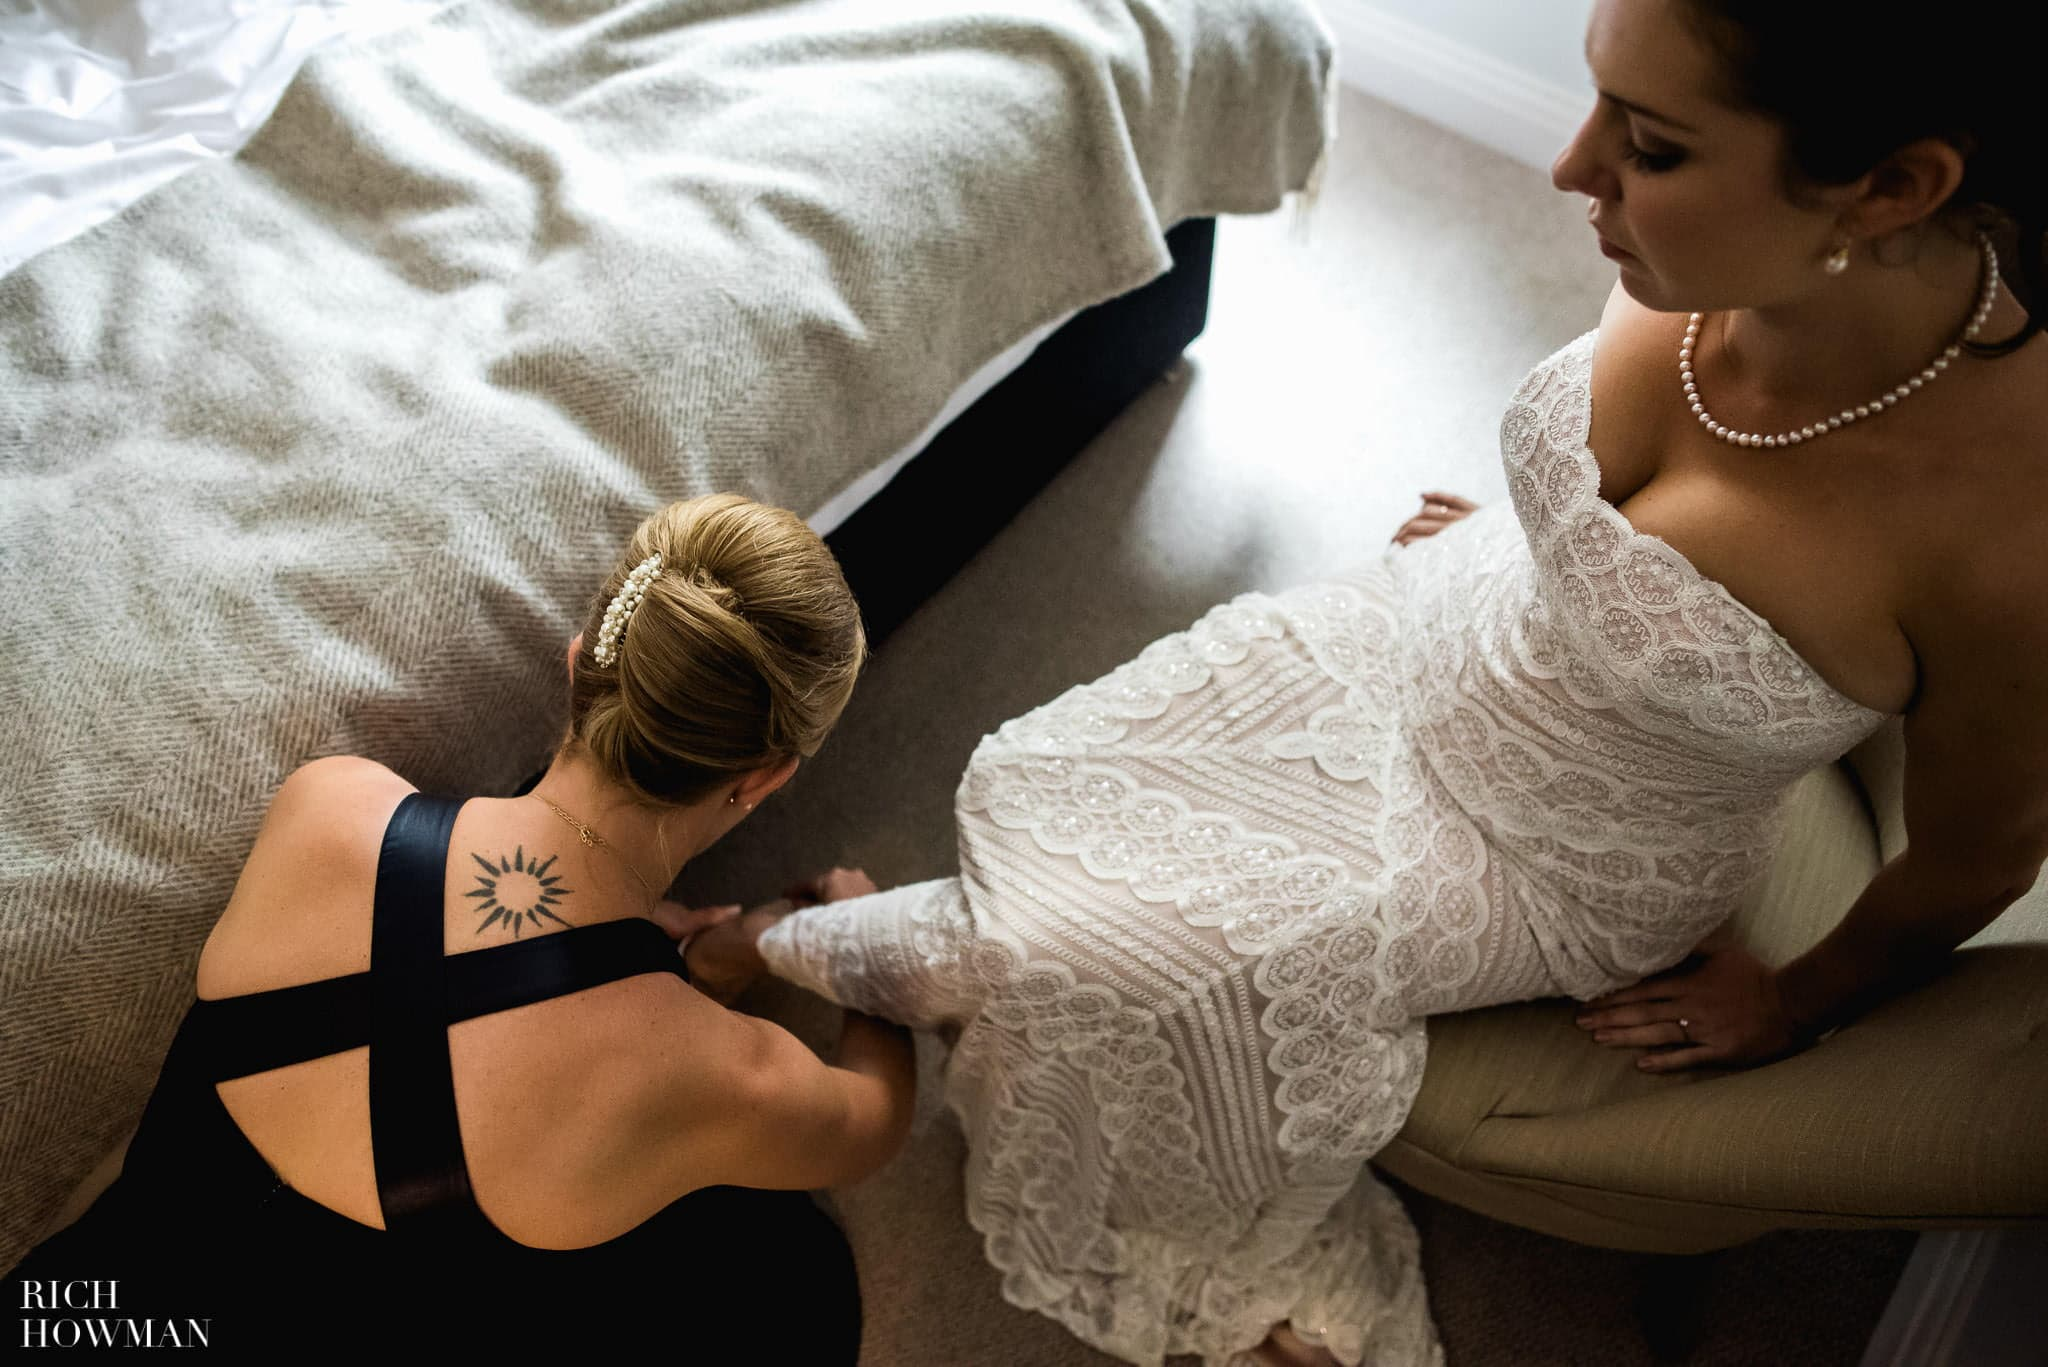 Bridesmaids helps the bride put her shoes on in the morning before her wedding.